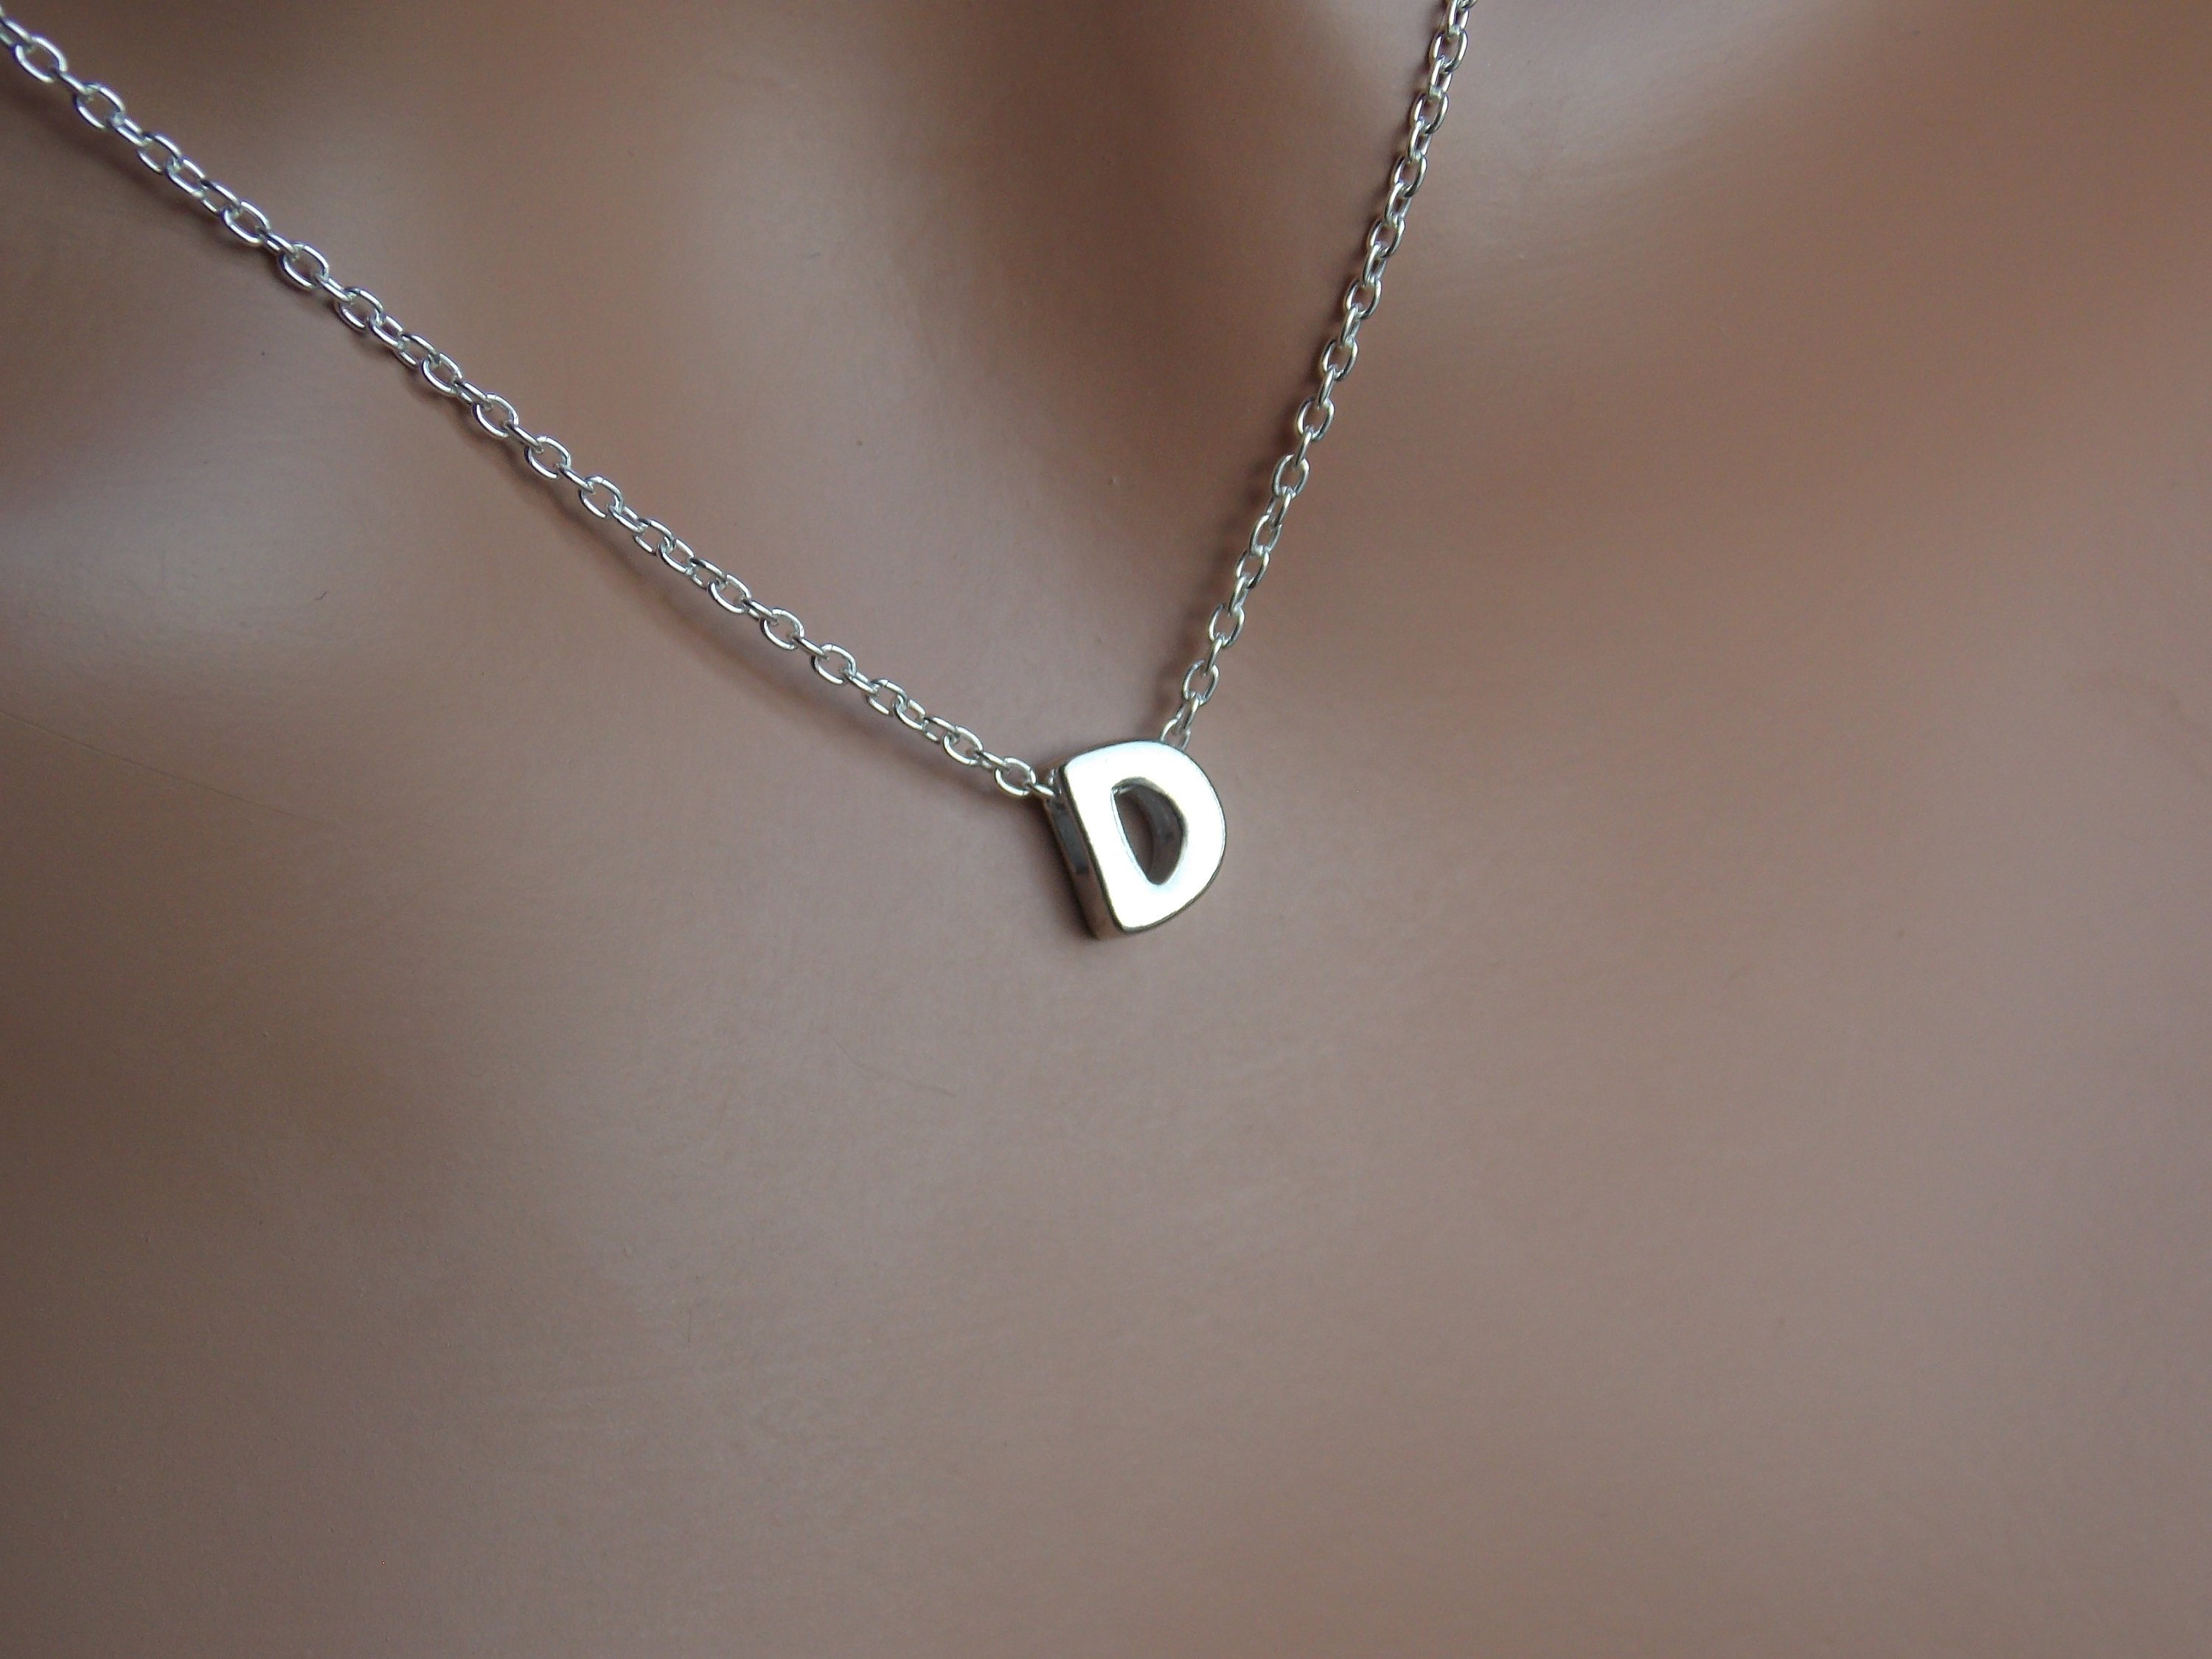 Initial D Necklace, Letter D, Letter D Necklace, Monogram D, Letter D  Pendant, D Charm, D Jewelry, Alphabet, Sterling Silver D, Stampsink With Most Recent Letter V Alphabet Locket Element Necklaces (Gallery 8 of 25)